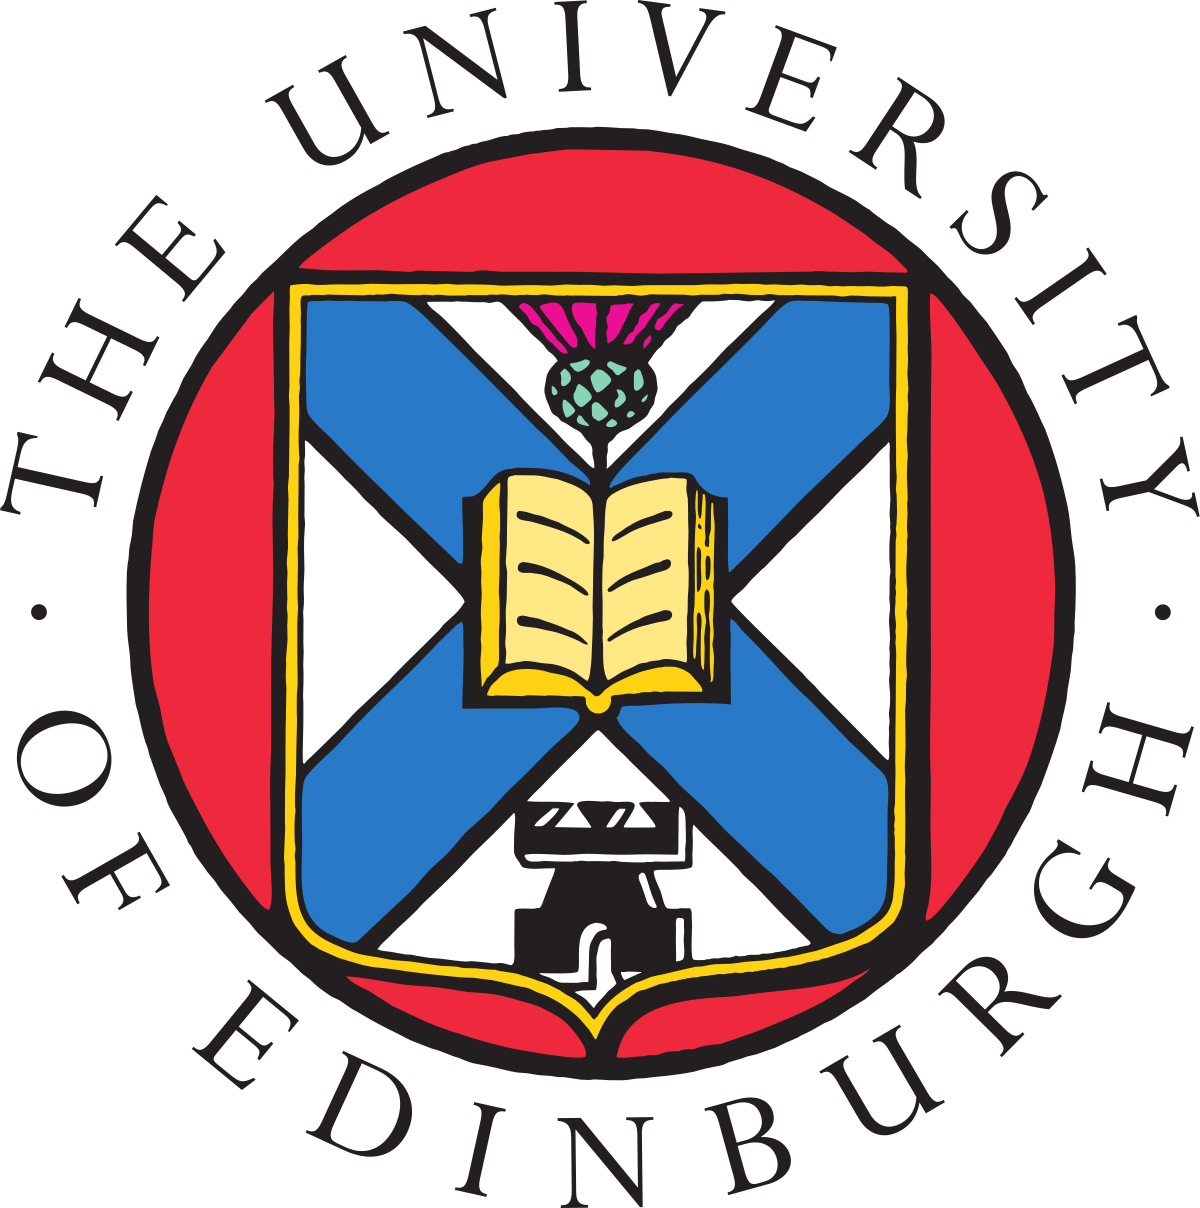 University_of_Edinburgh_ceremonial_roundel_svg.png